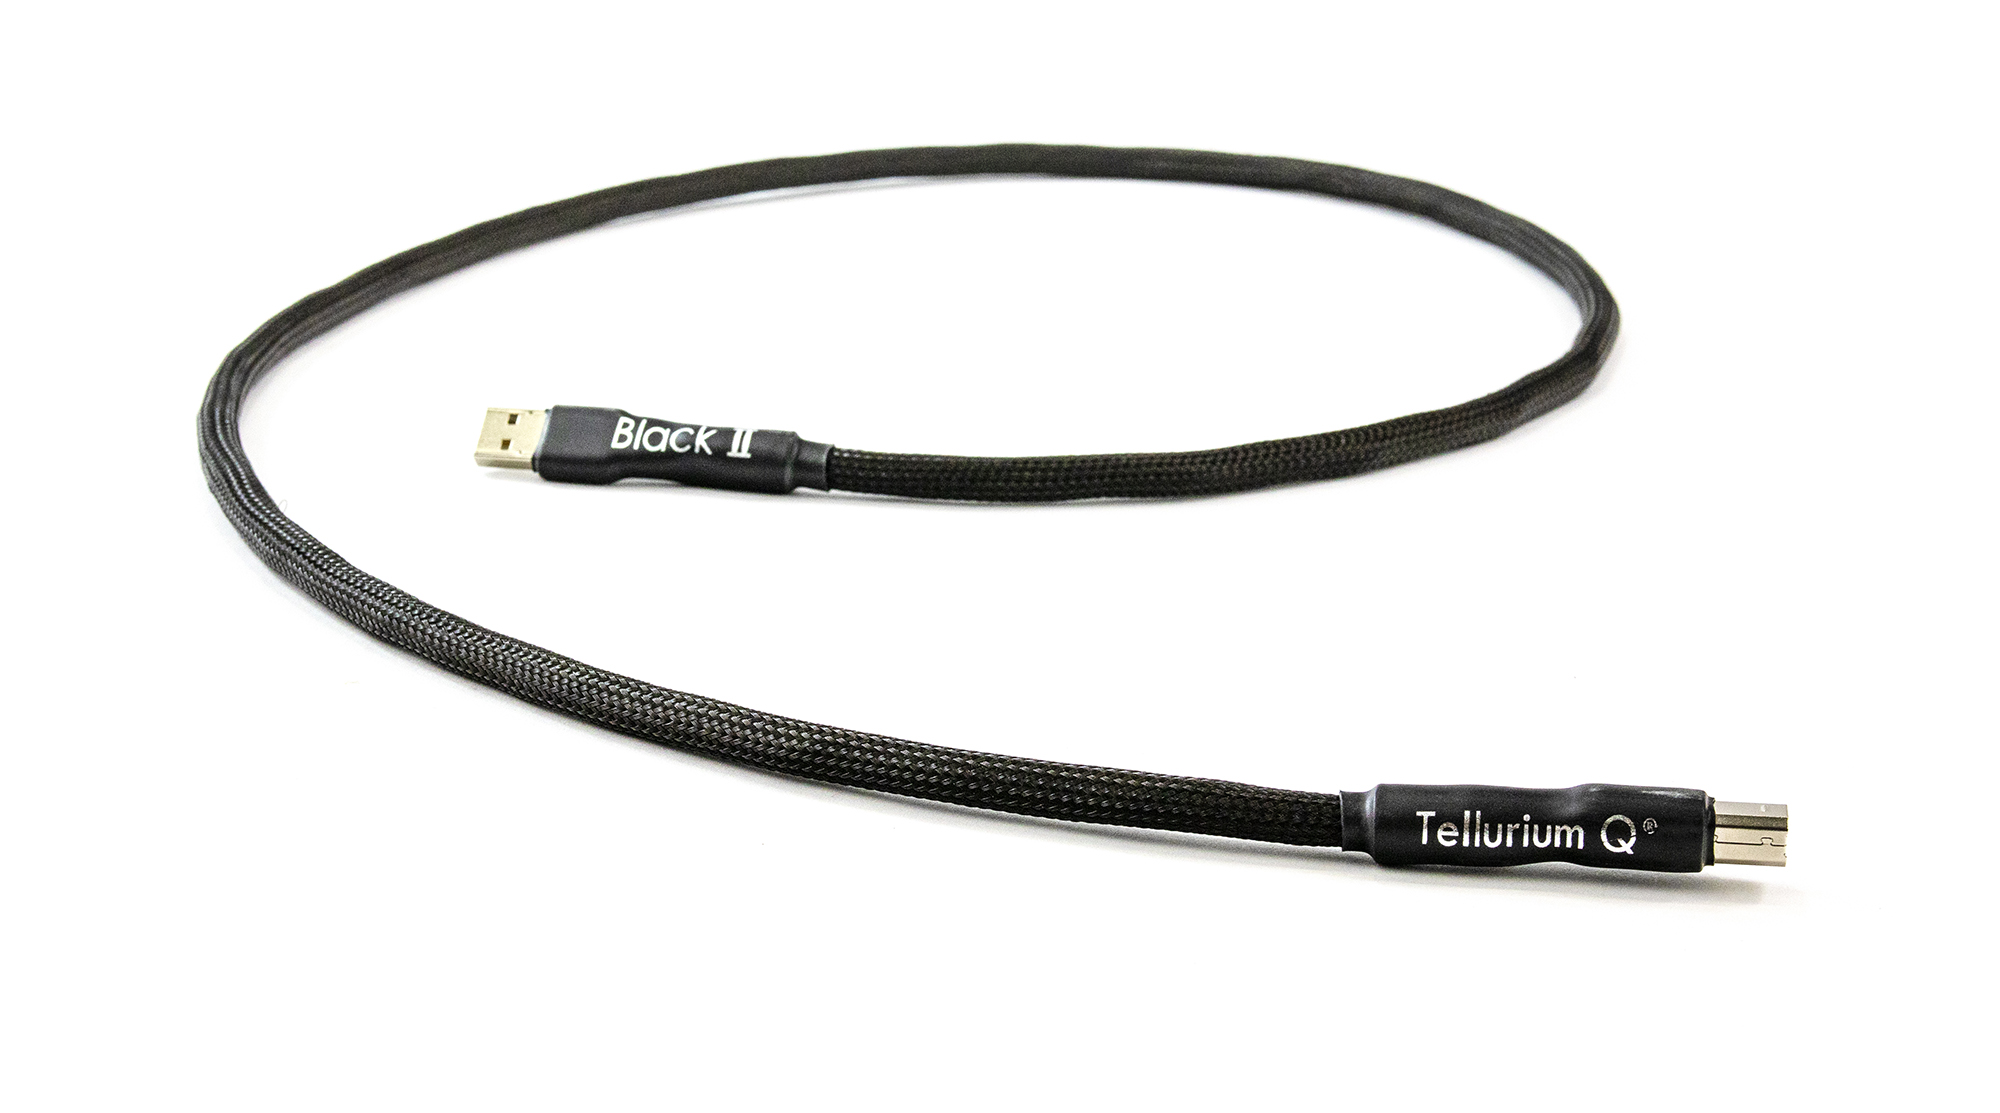 Black II USB 4